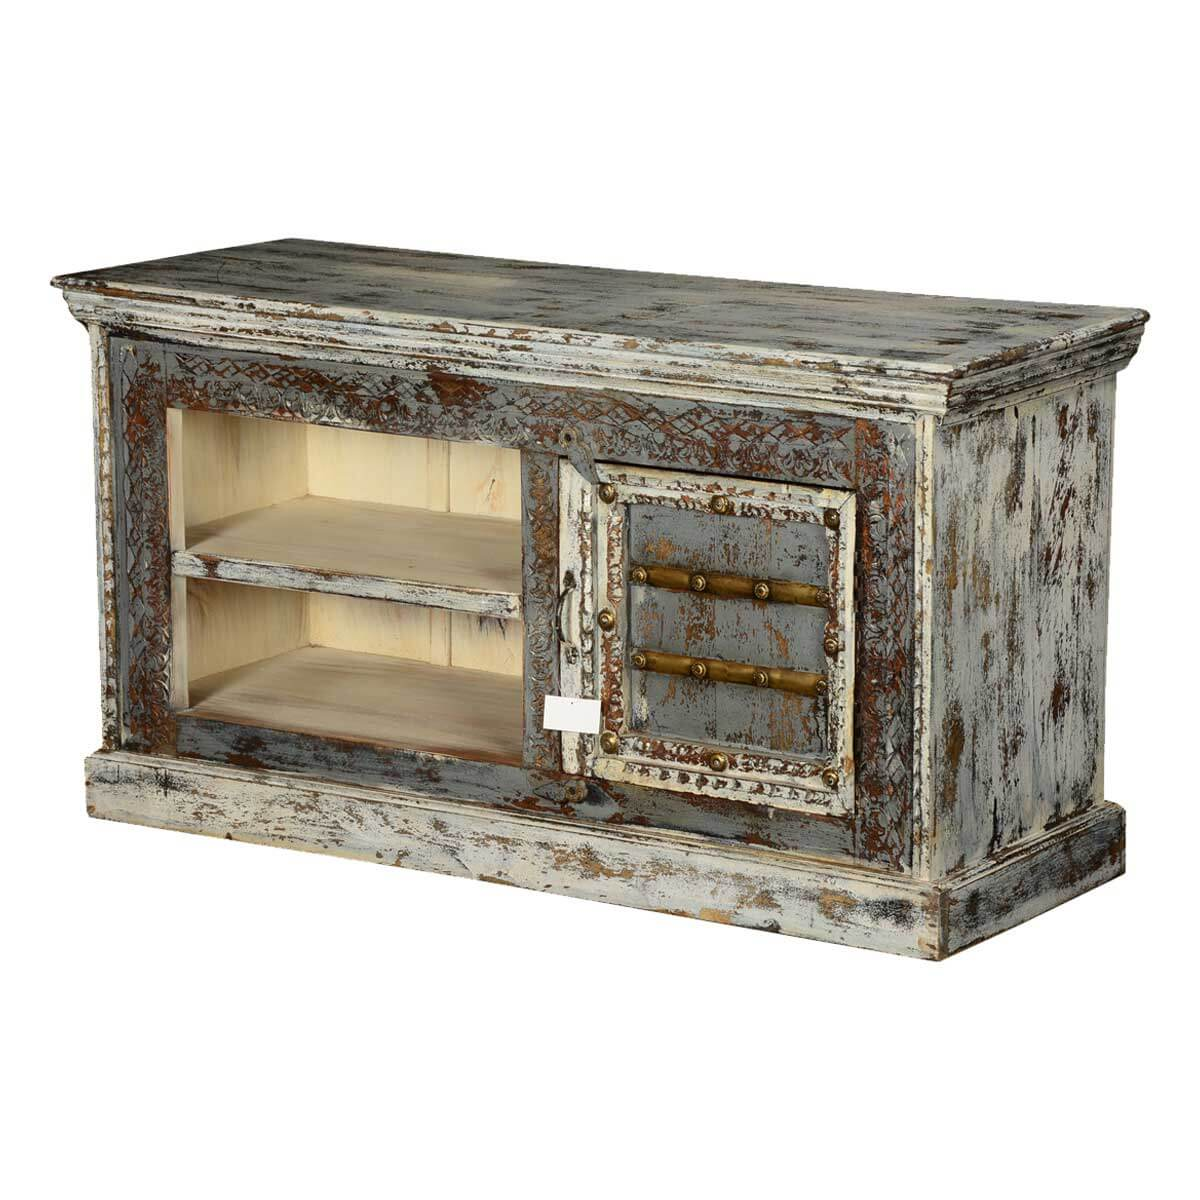 Corwin White Speckled Mango Wood Handcrafted TV Media Console Cabinet